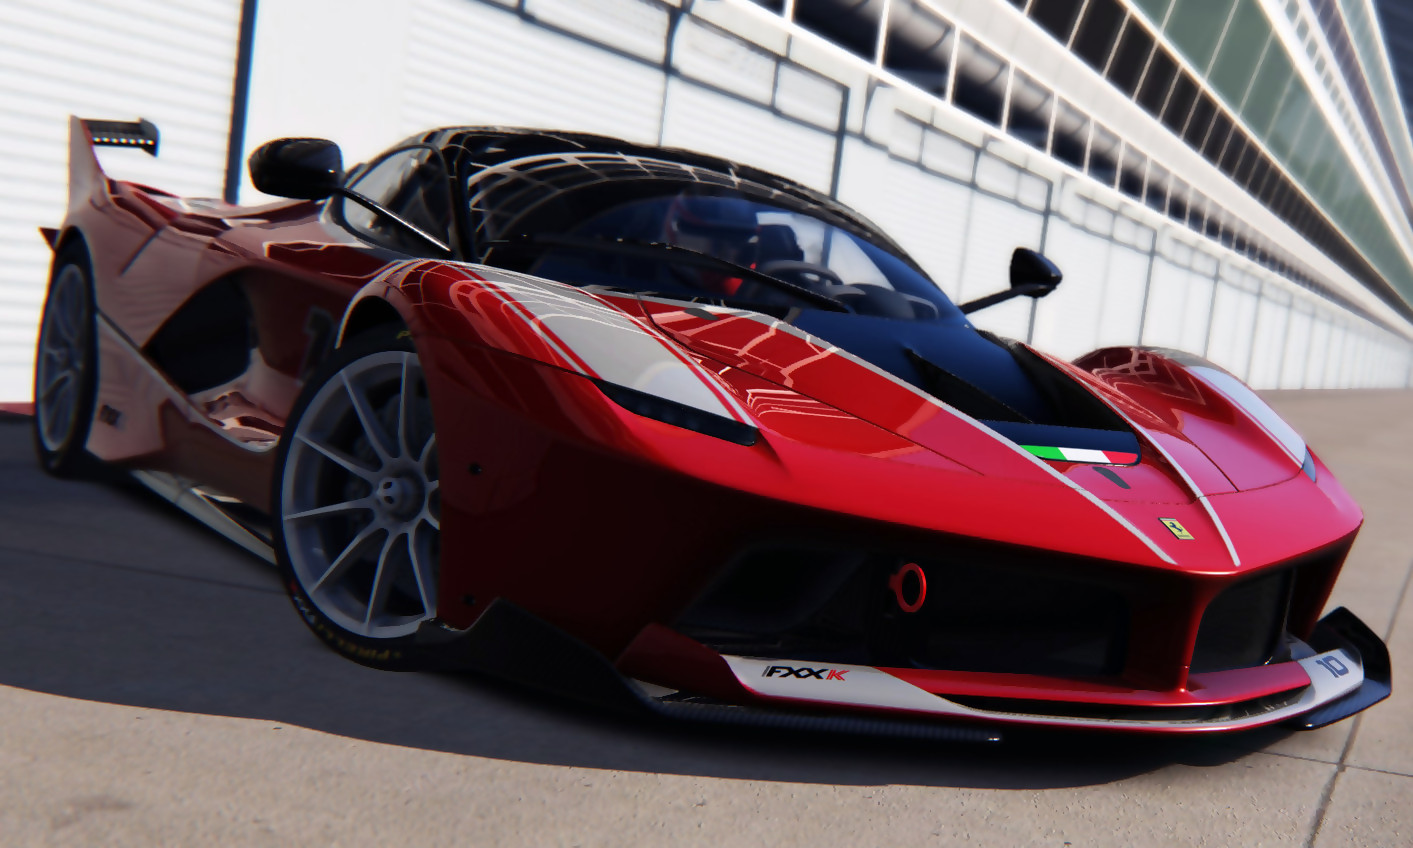 assetto corsa la date de sortie du jeu repouss e sur xbox one et ps4. Black Bedroom Furniture Sets. Home Design Ideas